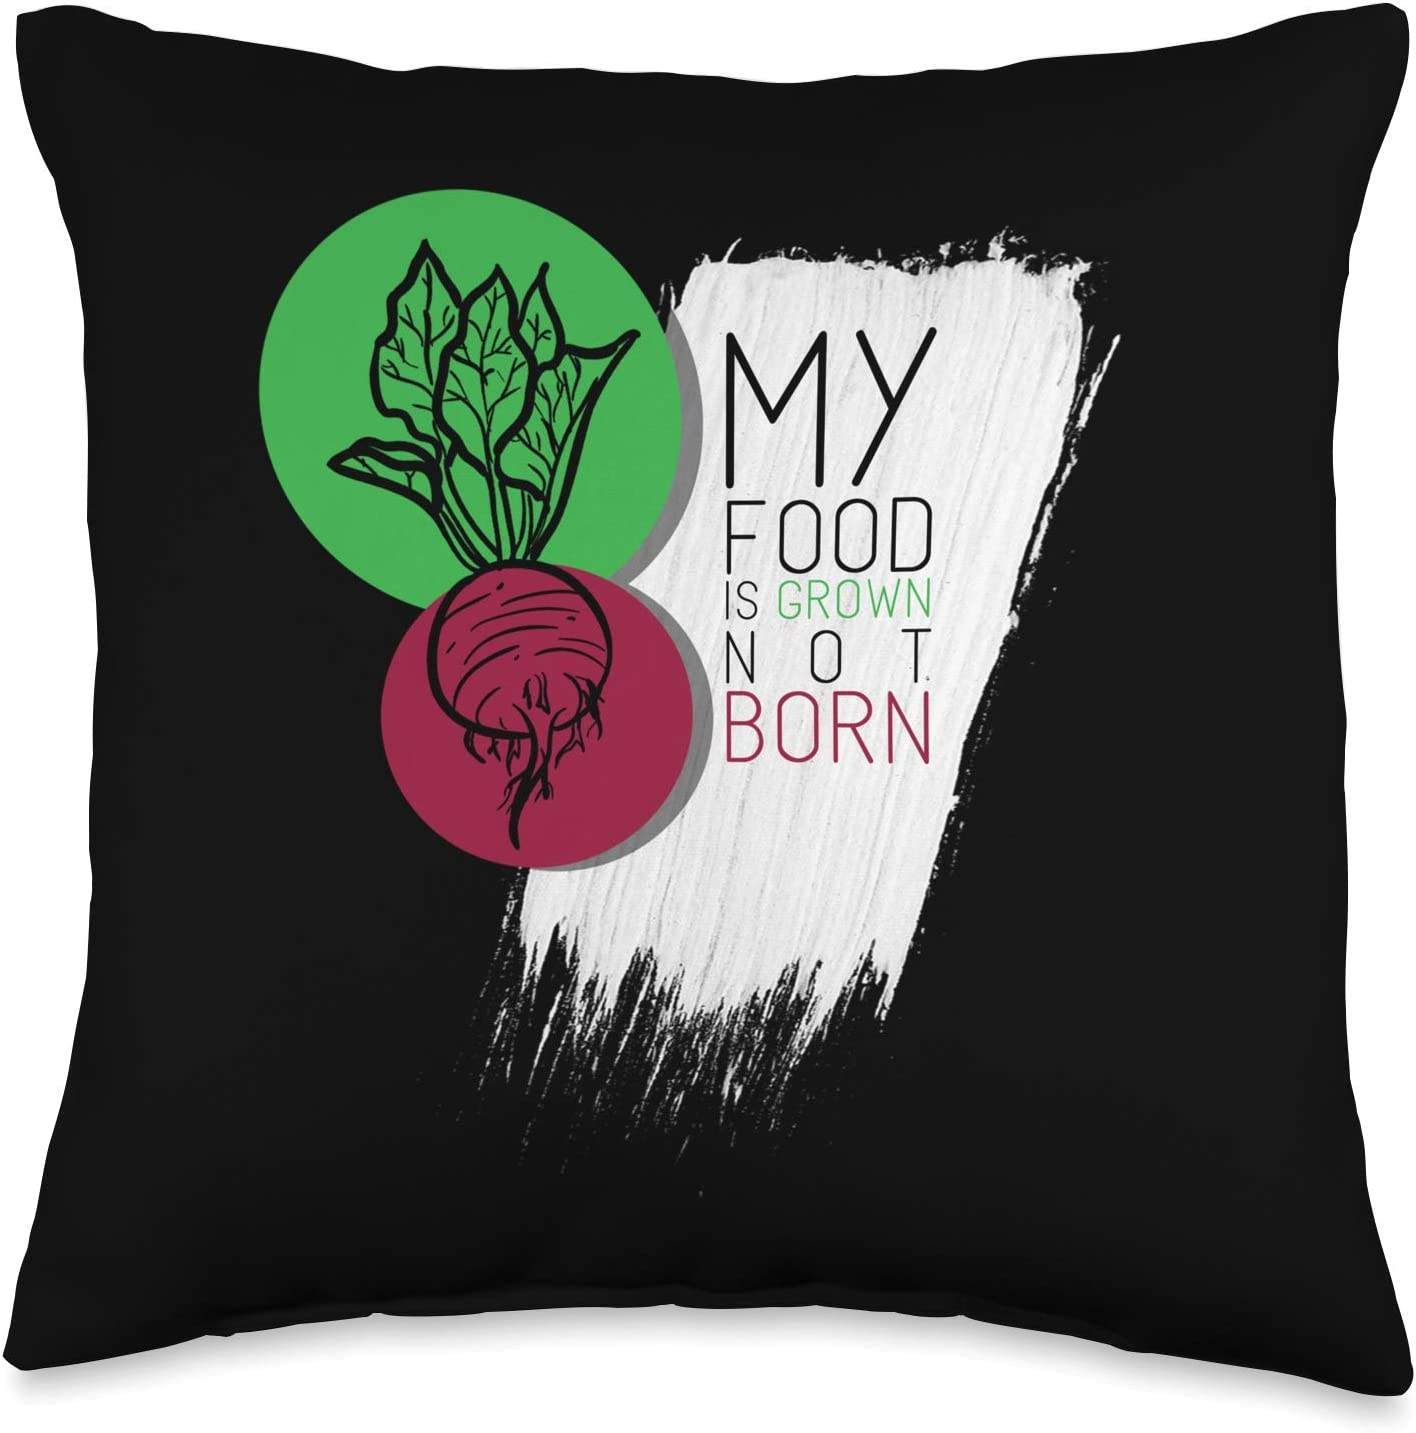 UAB KIDKIS My Food Is Grown Not Born Vegan Animal Lover Gift Throw Pillow, 16x16, Multicolor